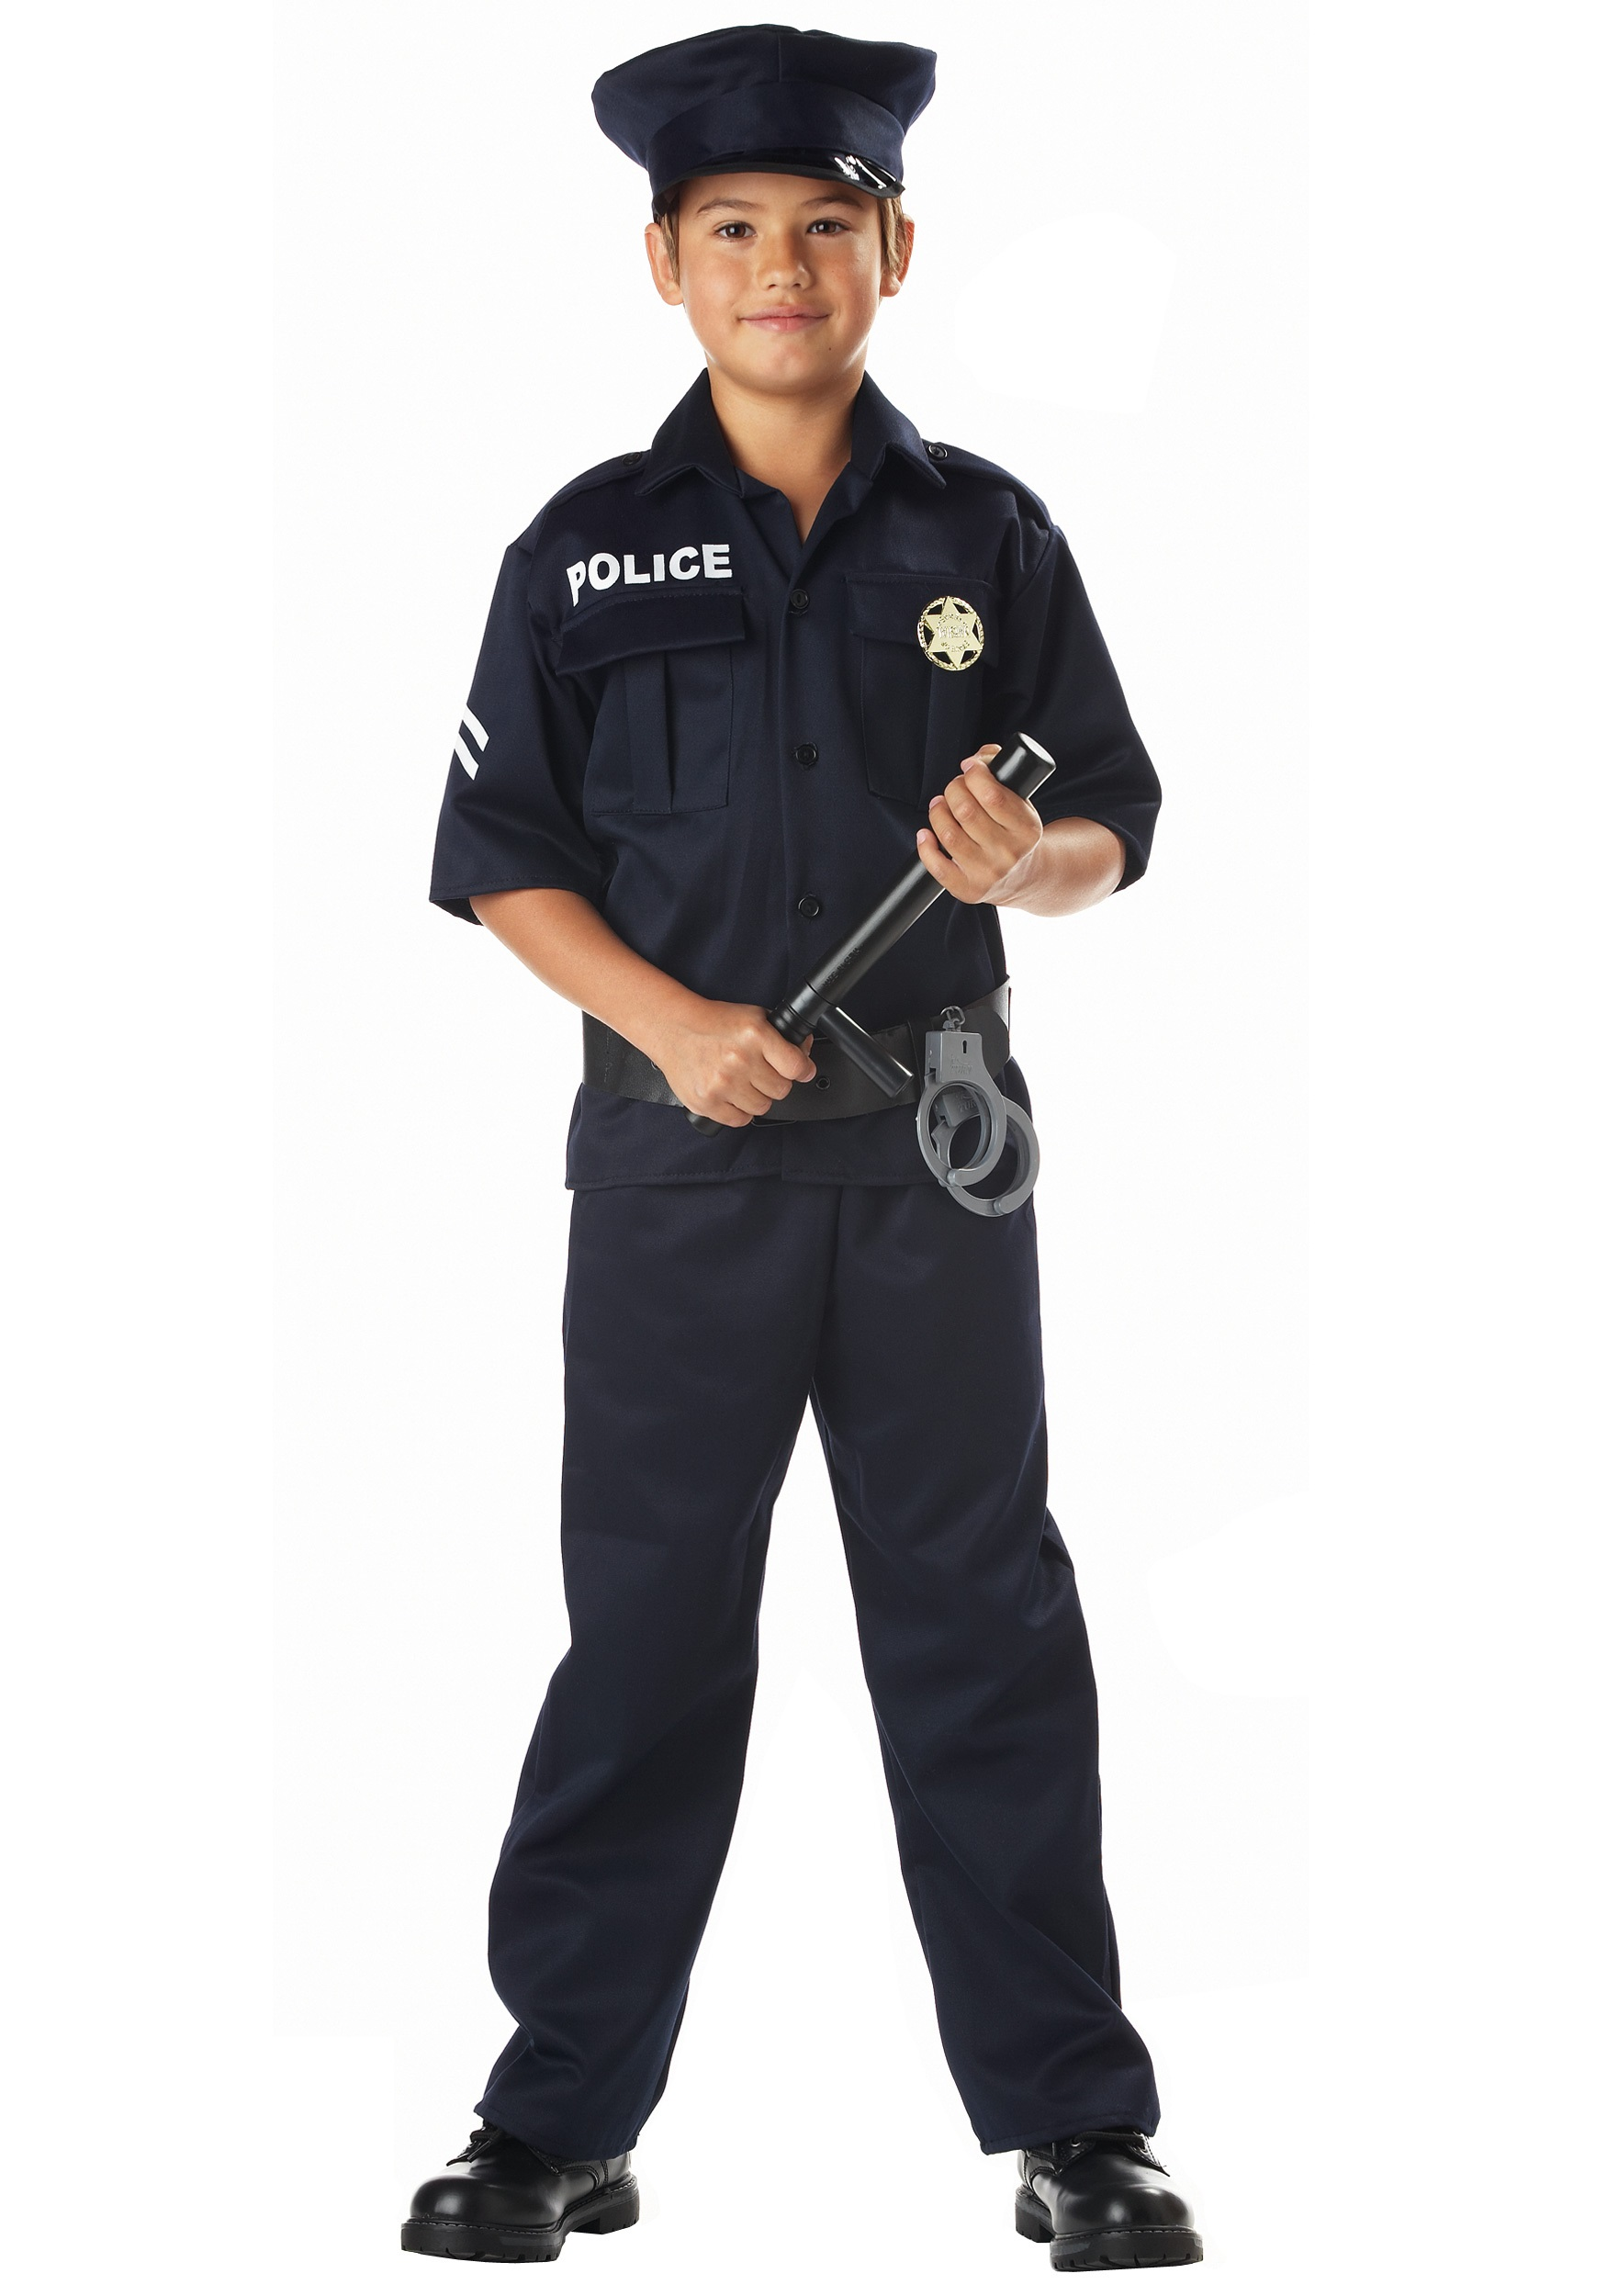 Kids police costume solutioingenieria Images